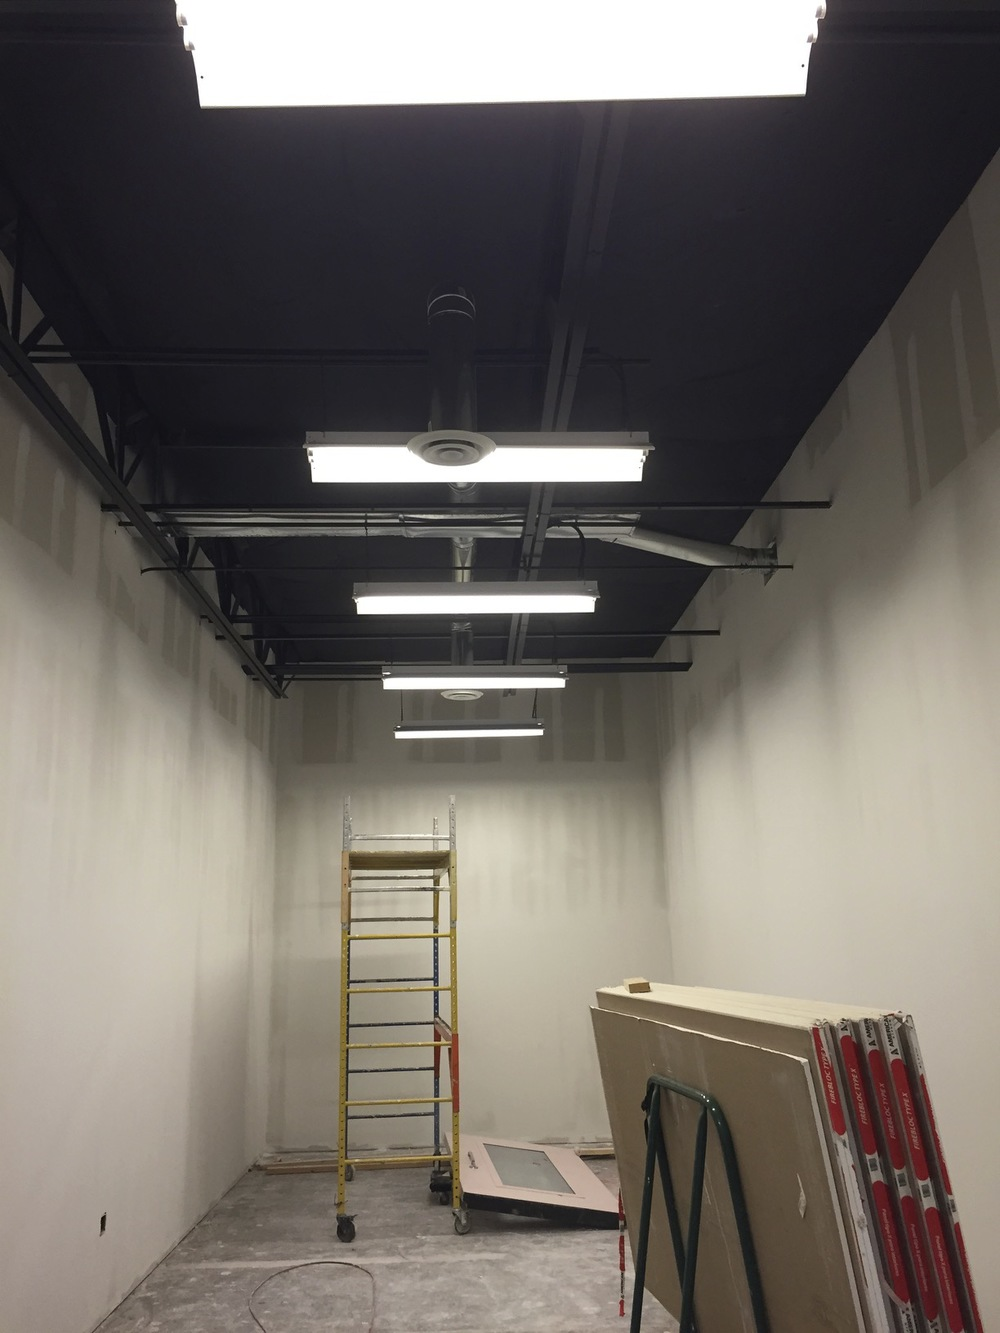 And finally... we have a room with actual lights! This is our equipment room next to the studio.